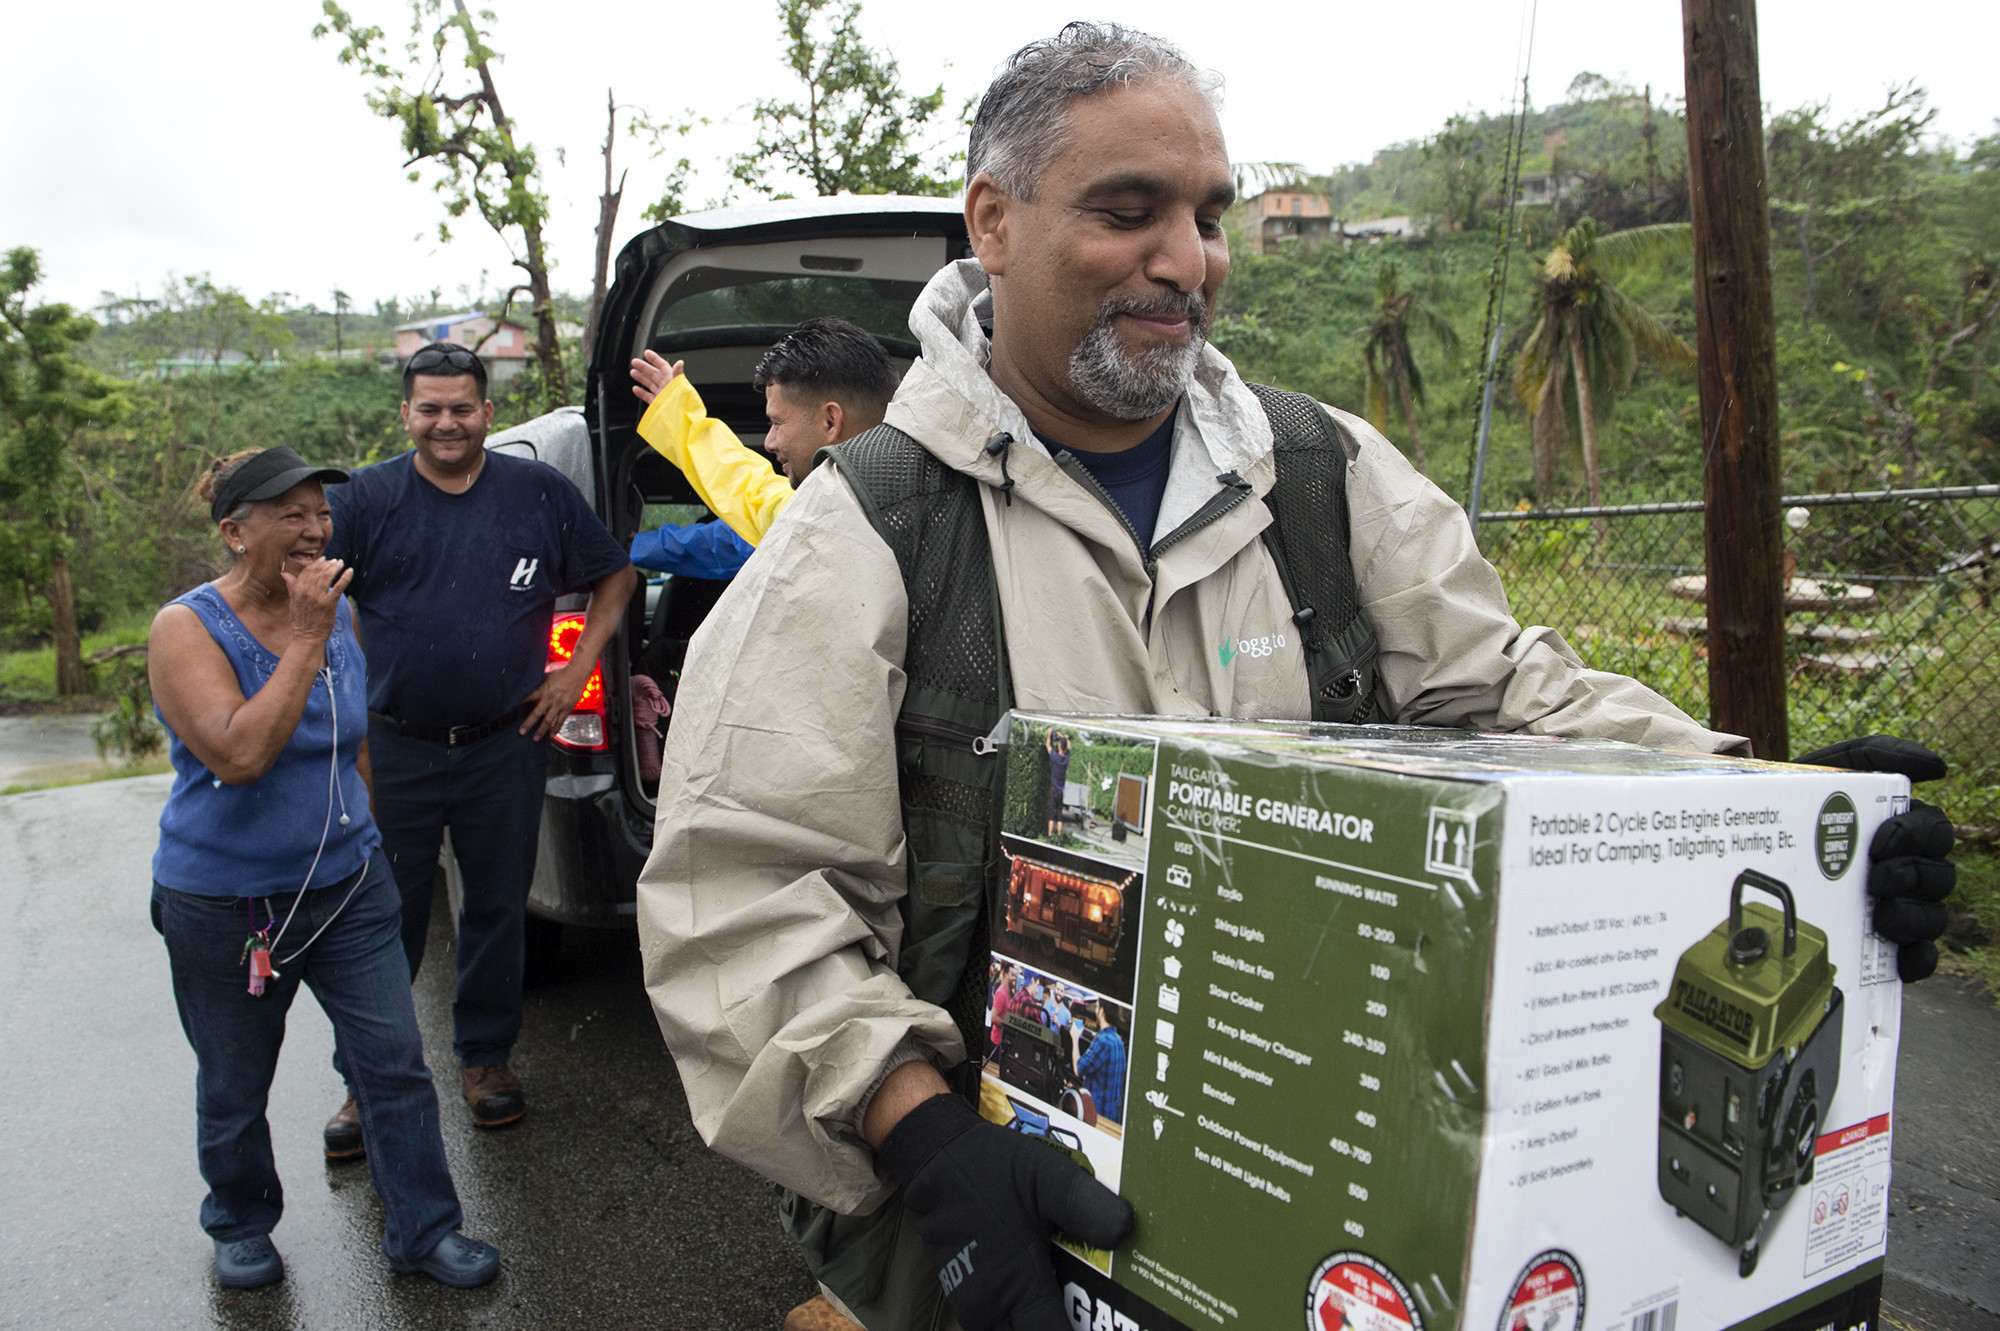 Mercedes Ramos smiles as Elliot Matos carries a generator to her taxi. The team gave Ramos the generator as a show of thanks for helping them navigate the damaged and confusing streets of Fajardo, a coastal city in the northeast corner of Puerto Rico. Matos learned that Ramos had been without electricity since Hurricane Maria struck and had been powering her husband